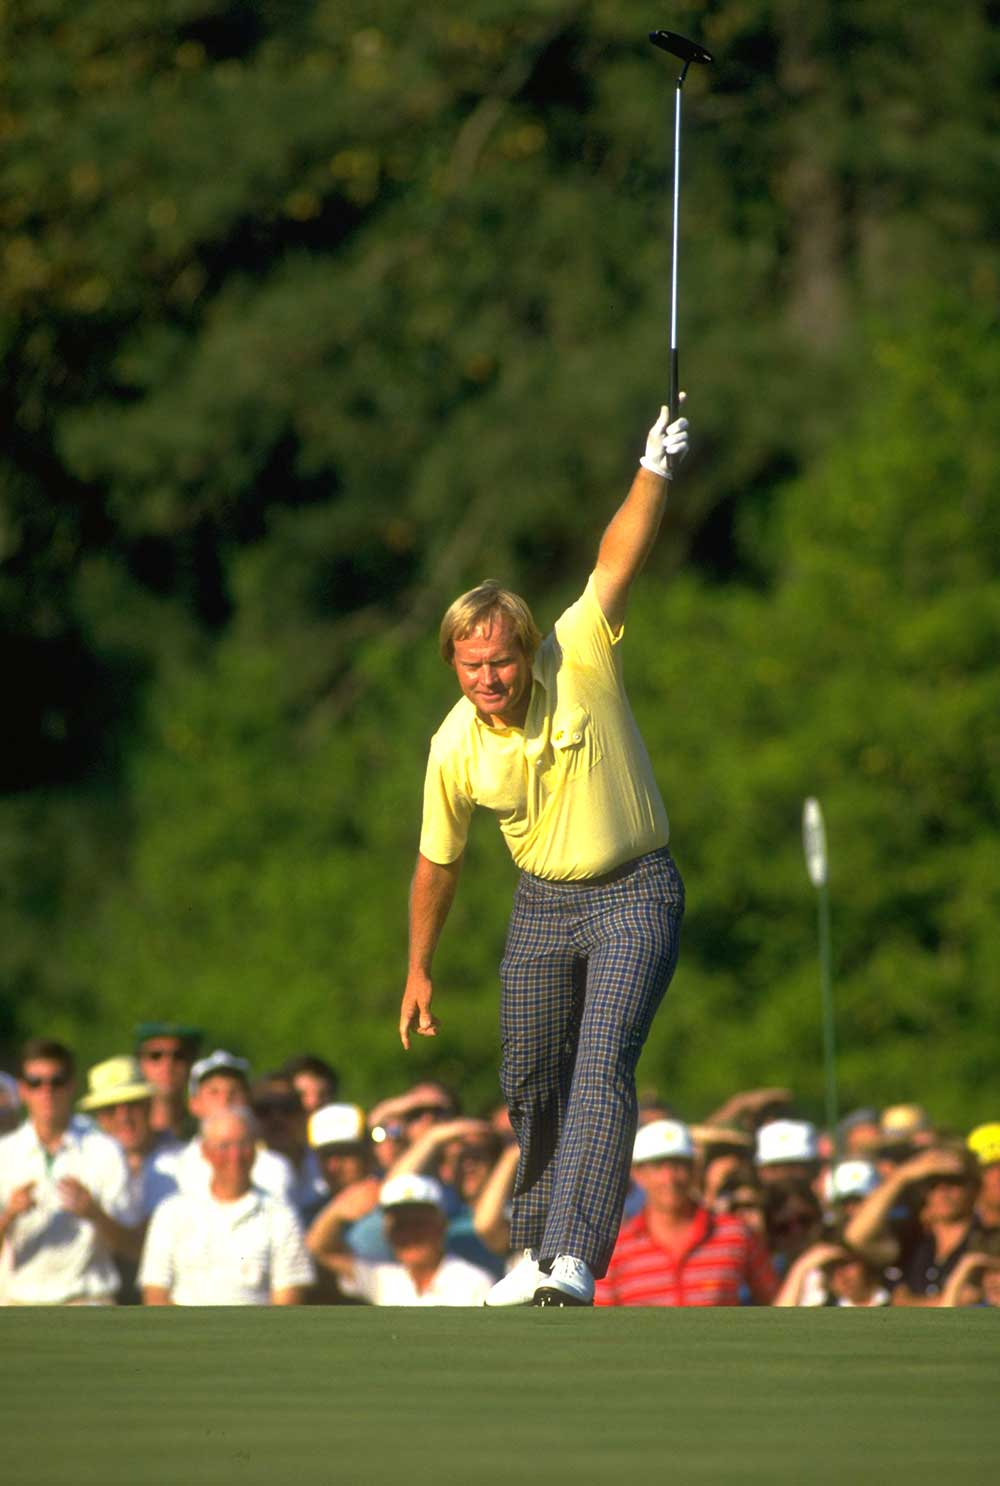 Jack Nicklaus' 1986 Masters victory is still believed to be among his greatest of his 18 majors.